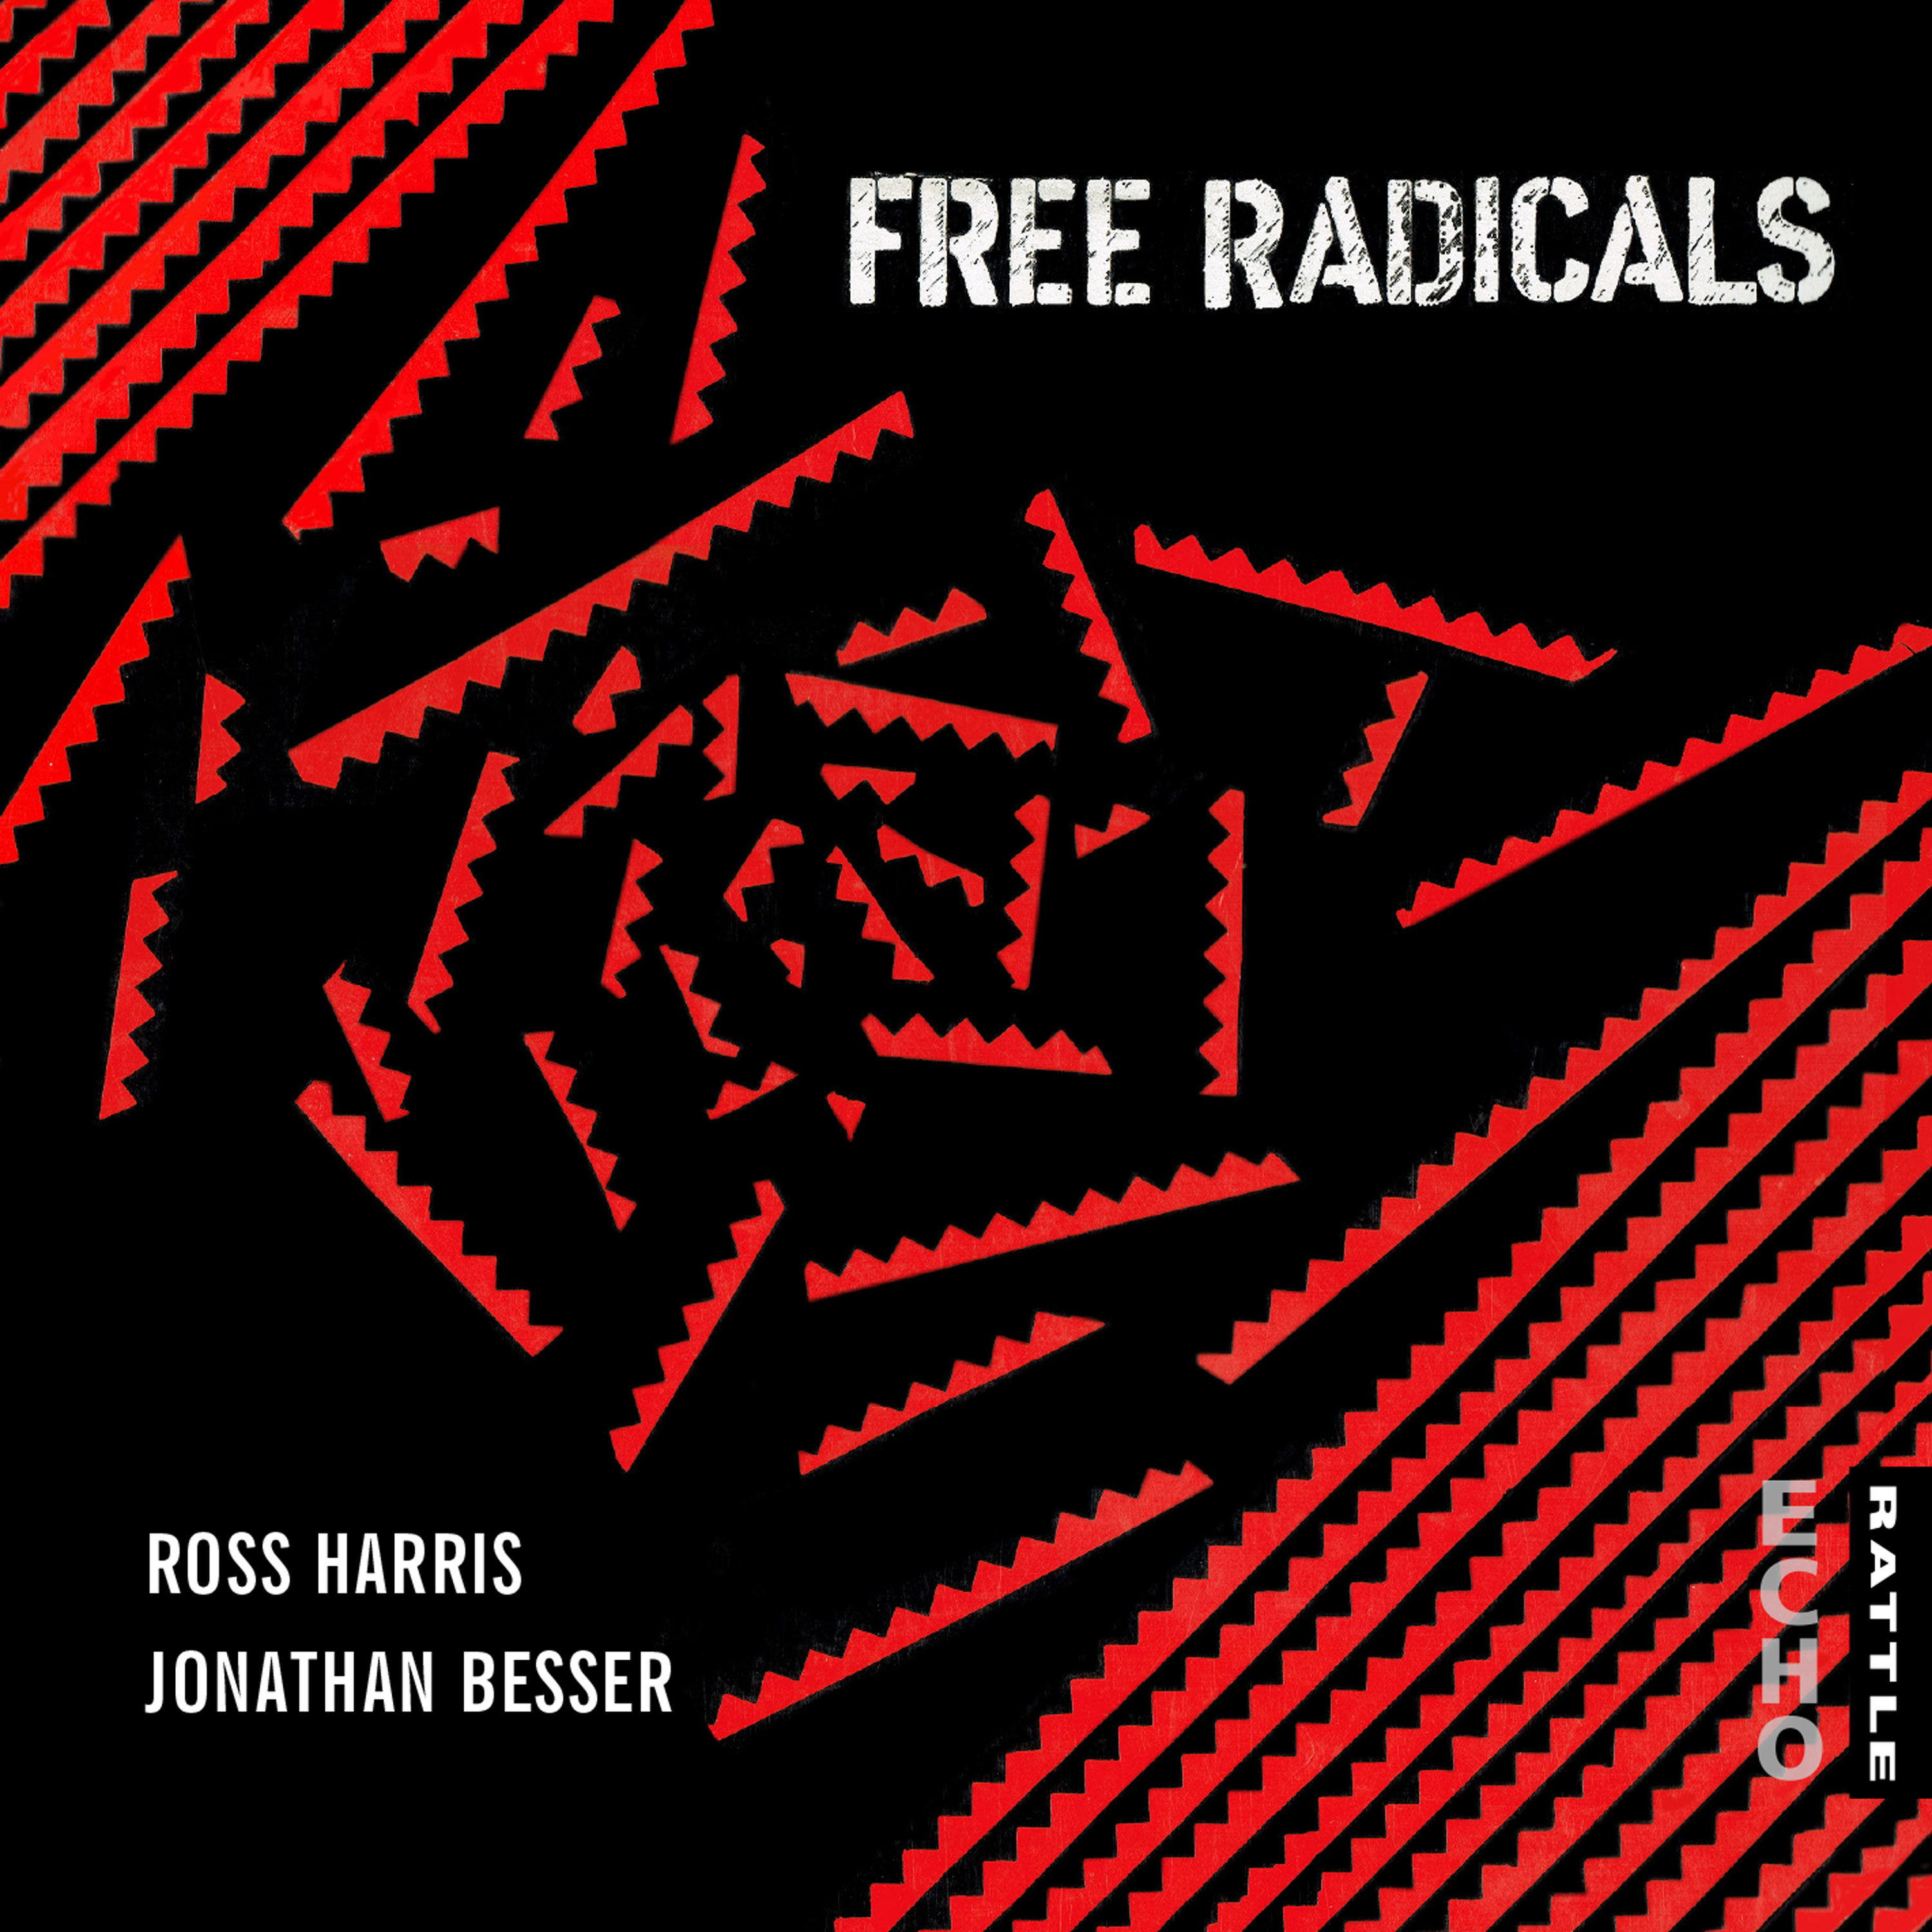 Ross Harris and Jonathan Besser | Free Radicals - downloadable MP3 ALBUM